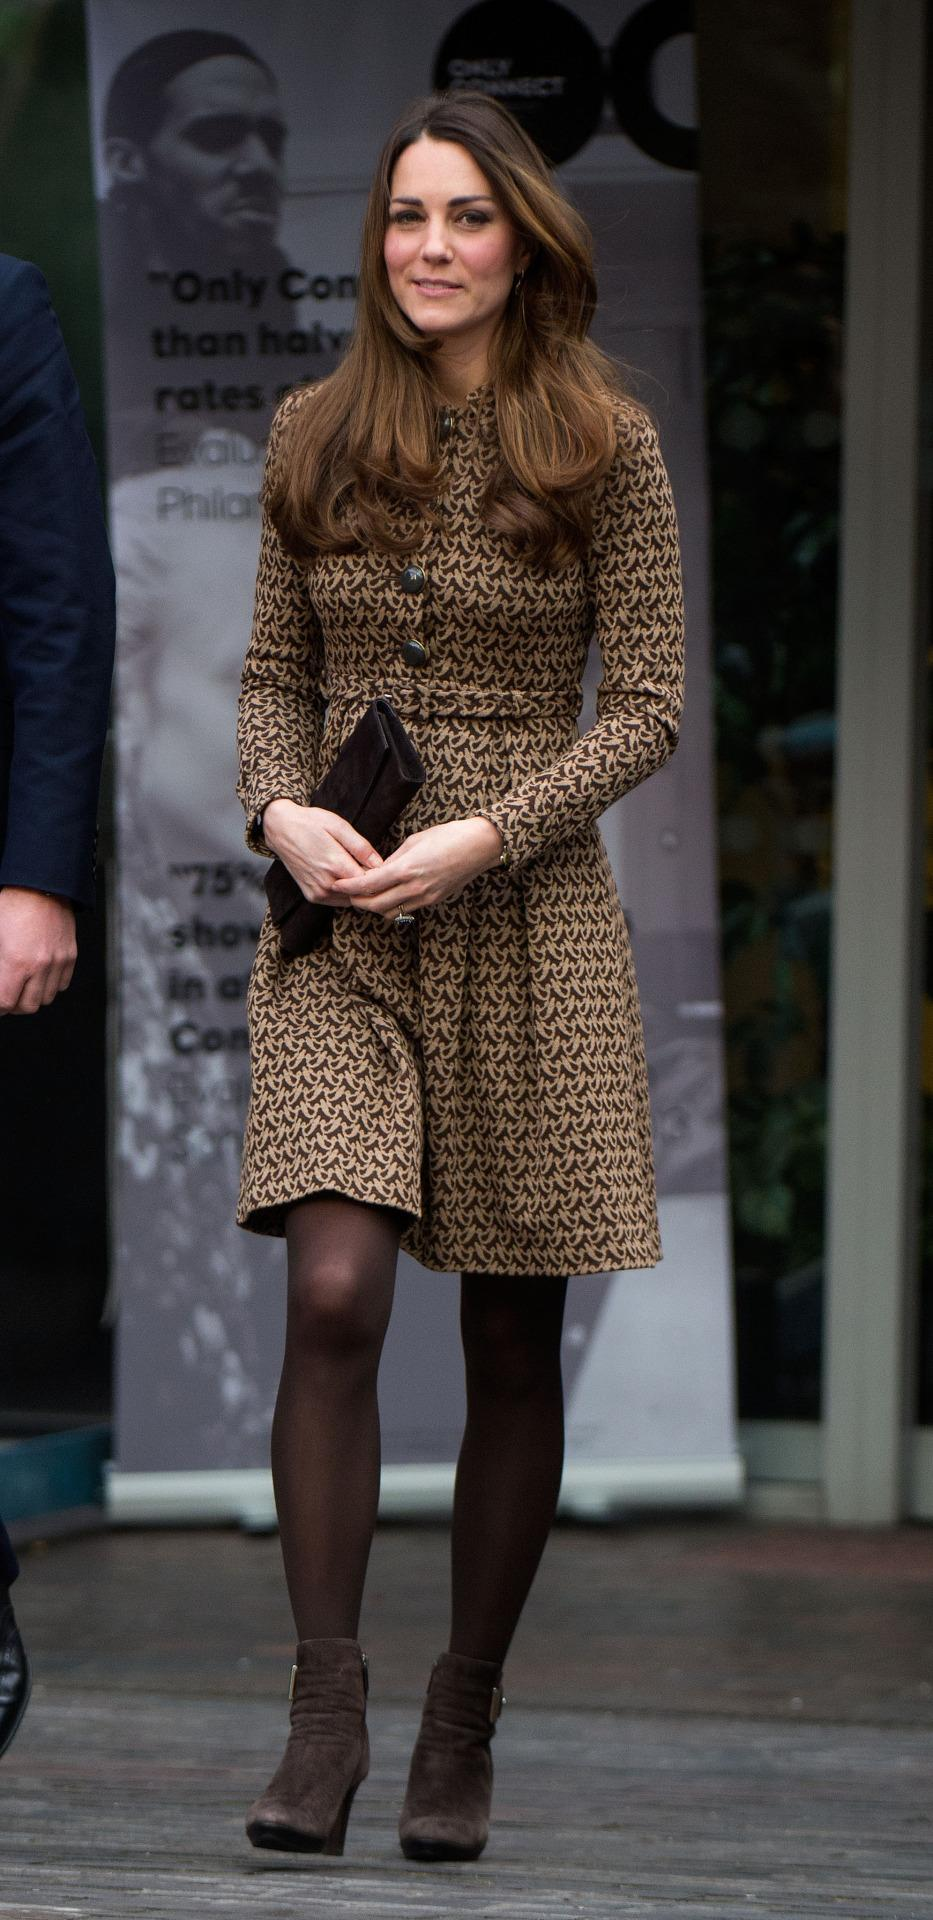 <p>For a charity visit, Kate wore a printed Orla Kiely dress with brown Aquatalia heeled boots and a matching clutch. </p><p><i>[Photo: PA]</i></p>